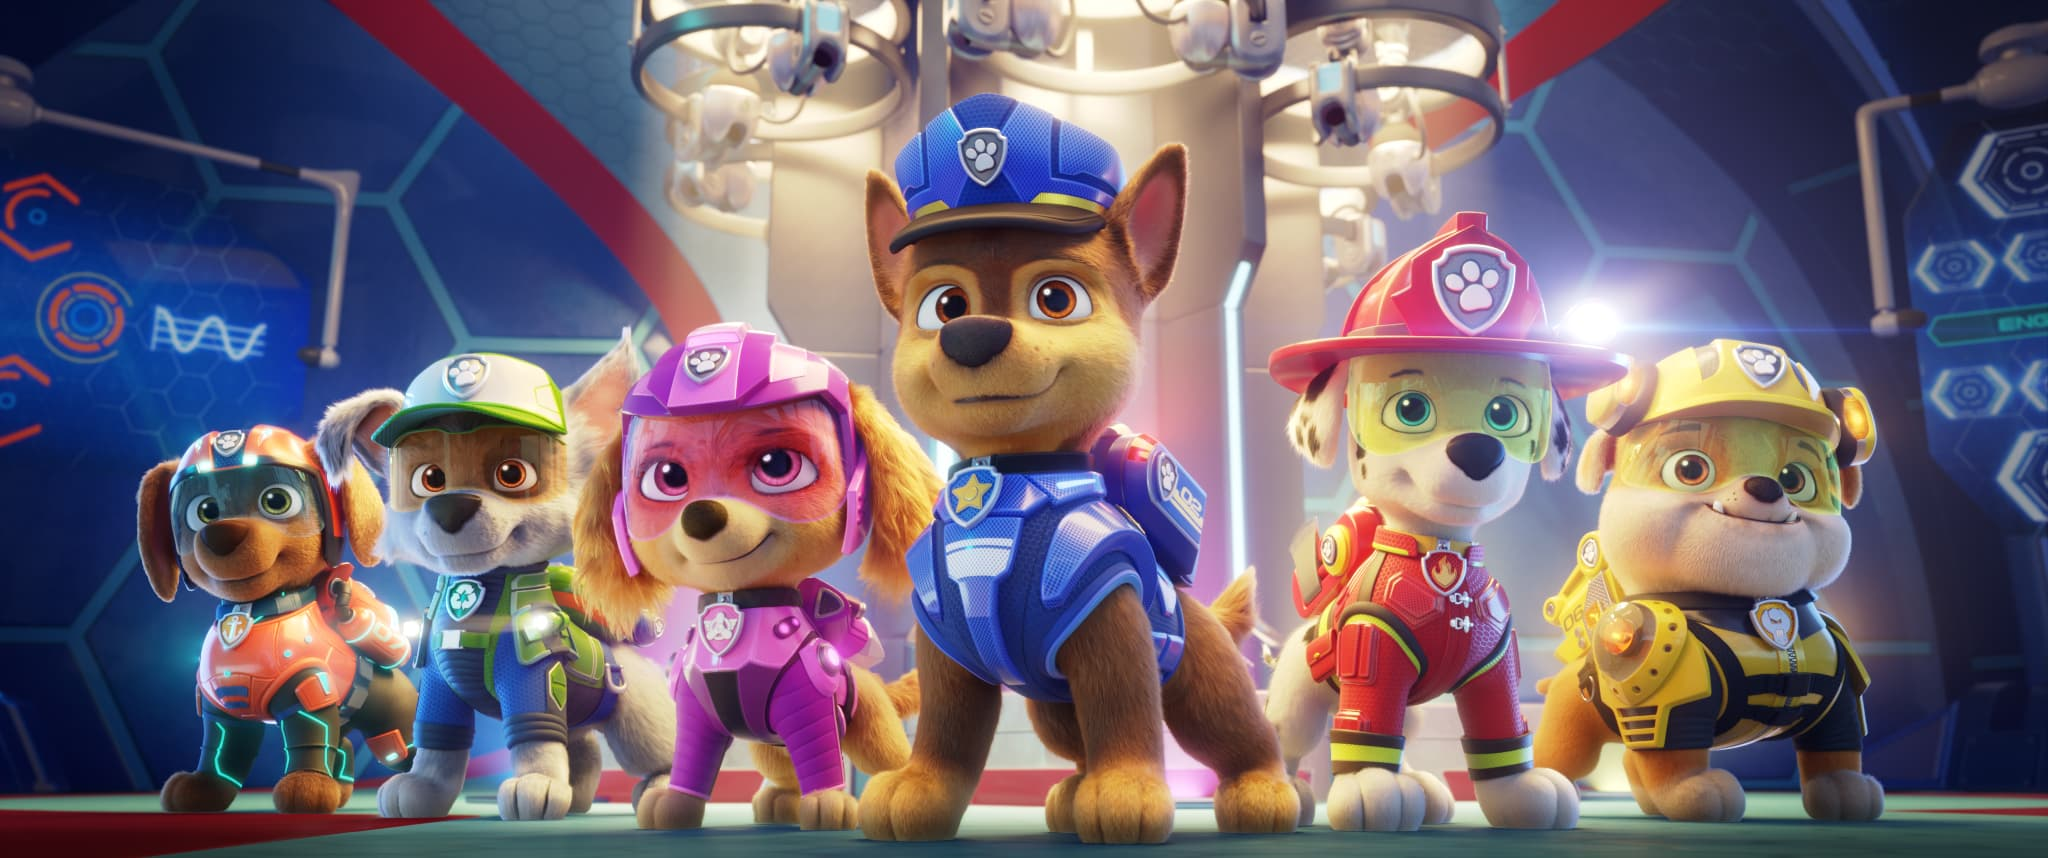 Paw Patrol: The Movie Review & Interview